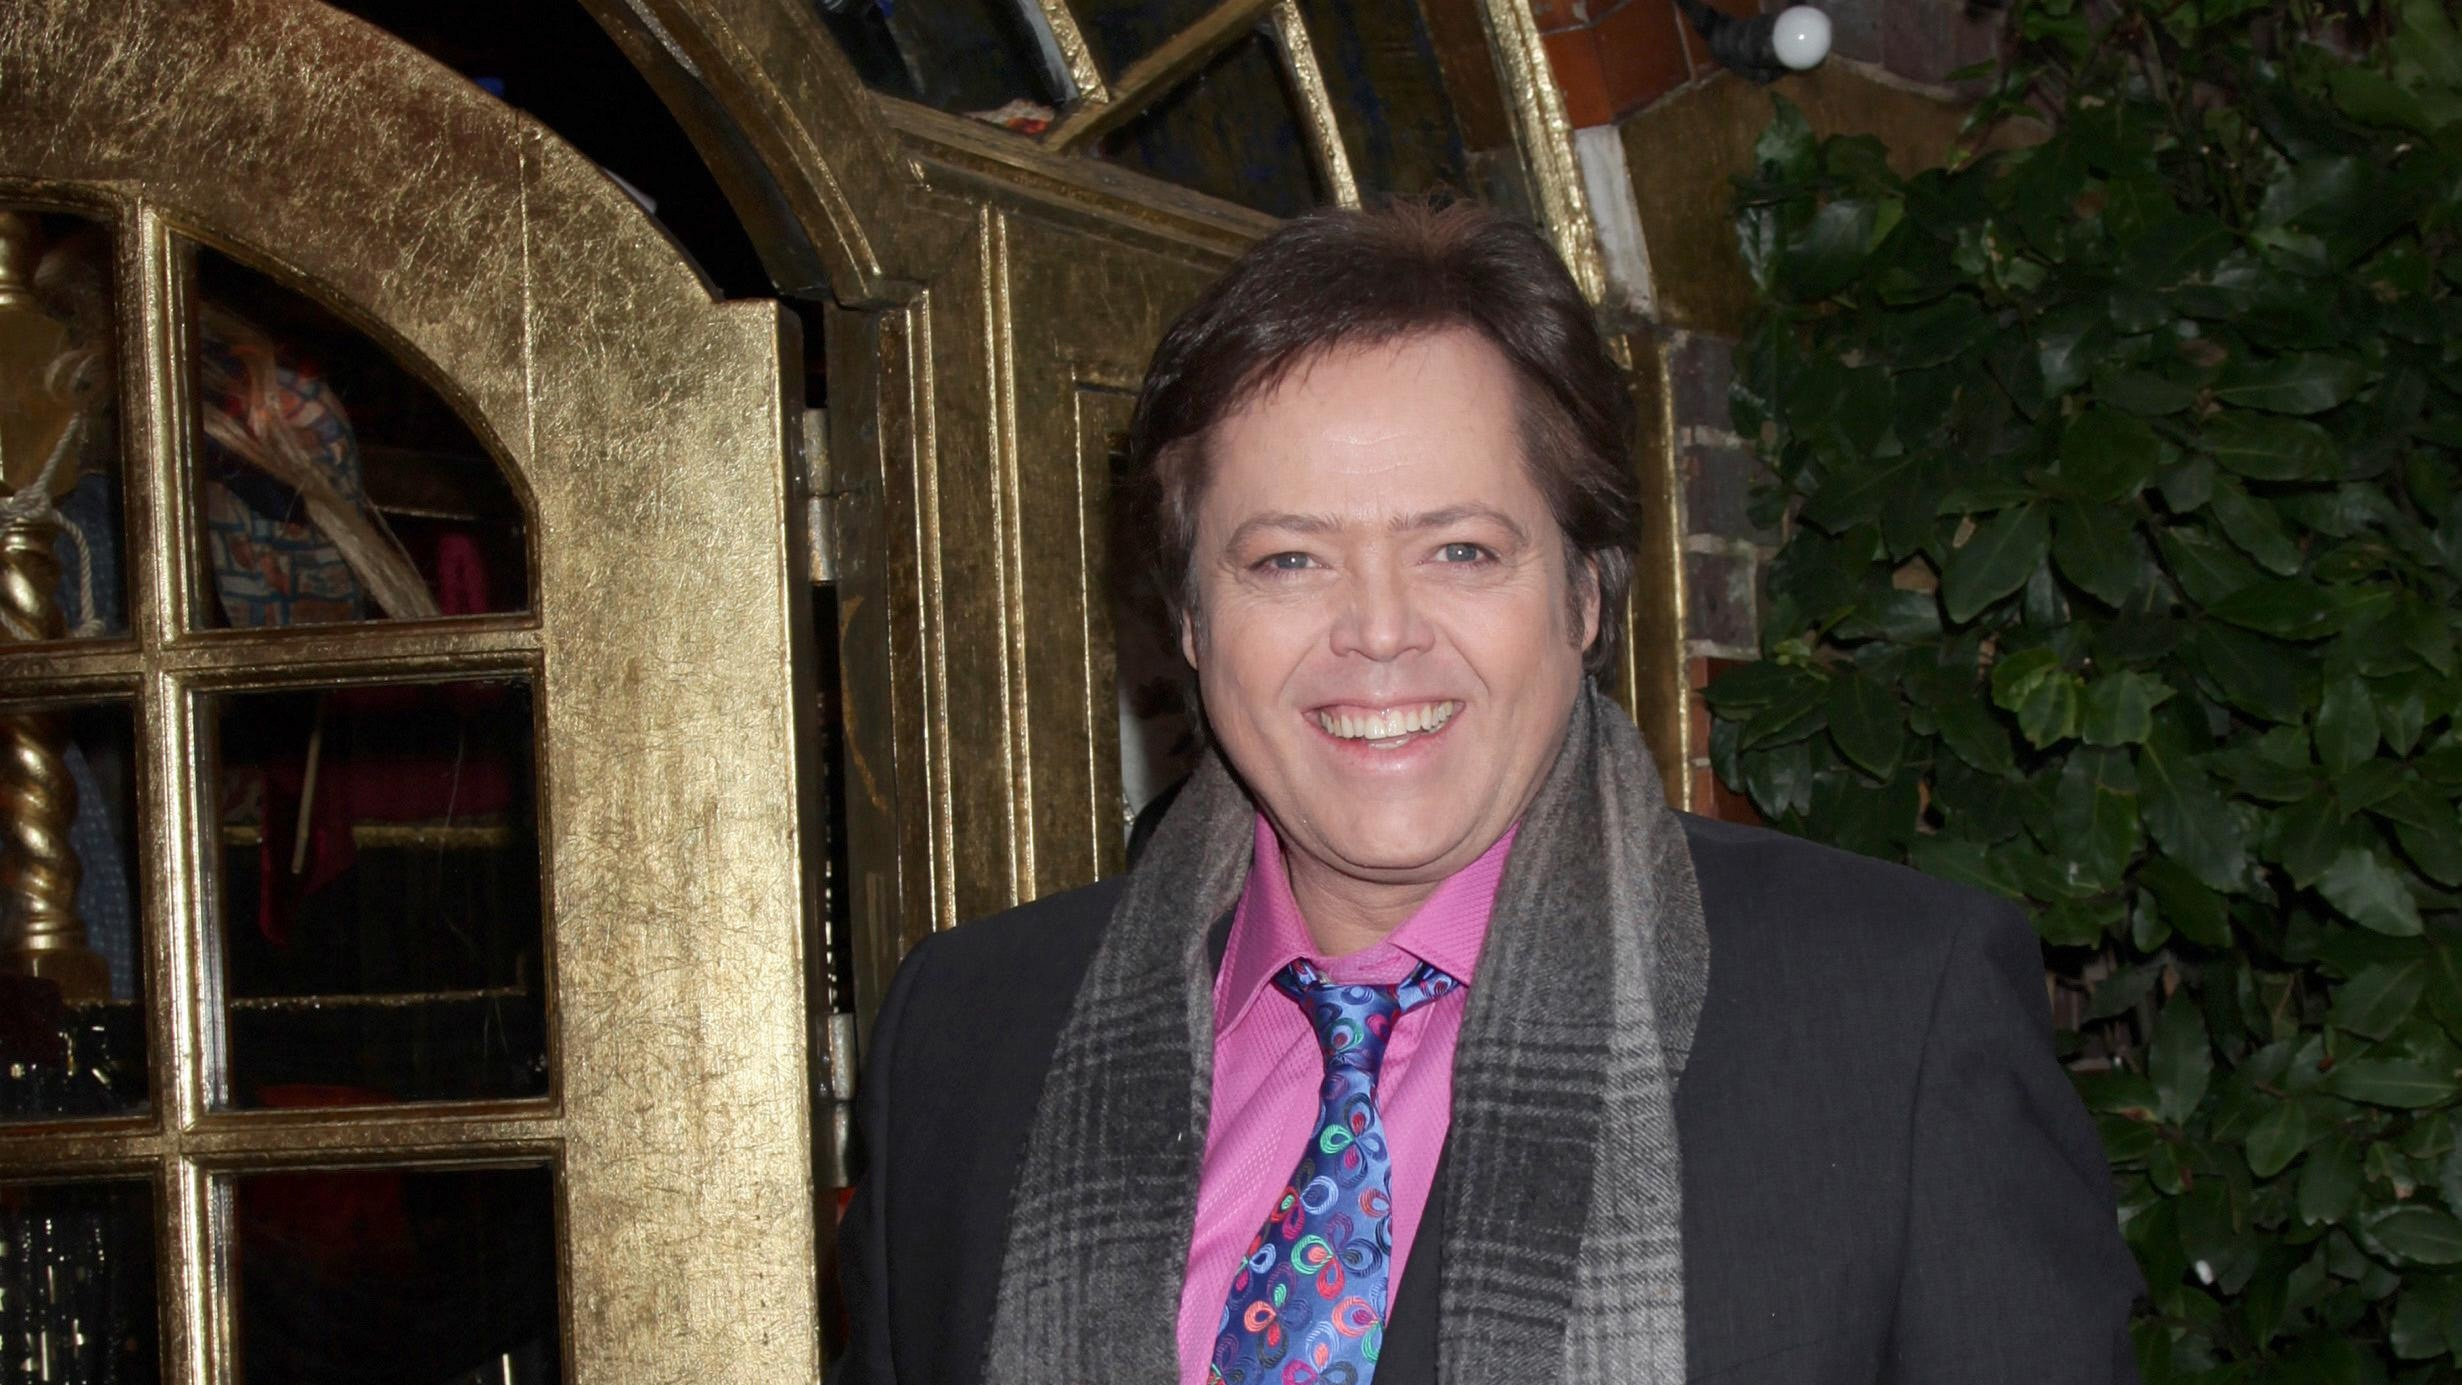 Jimmy Osmond suffers stroke on stage in pantomine